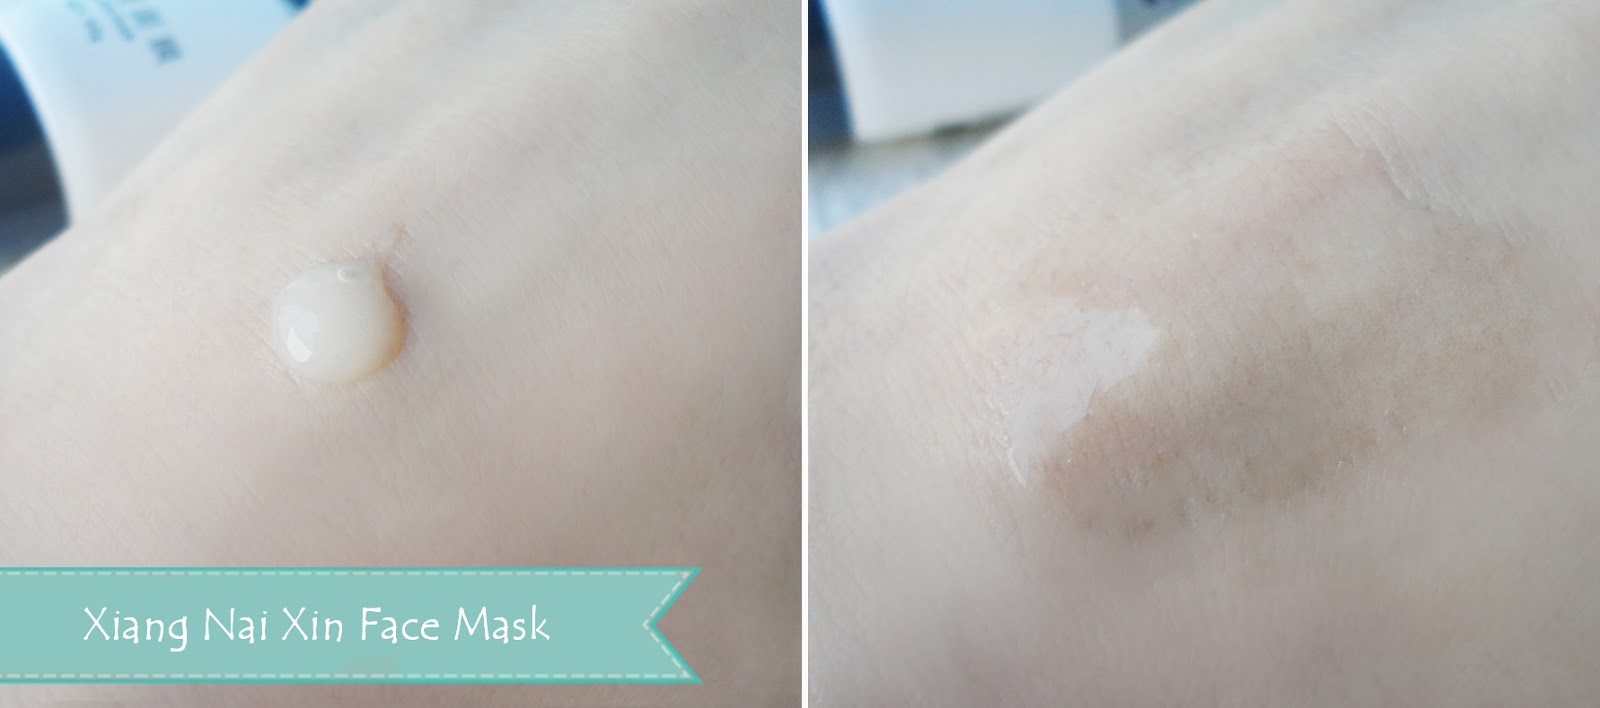 Xiang Nai Xin Suction Peel Off Mask Freckle Rejuvenation asian beauty mask products review pictures